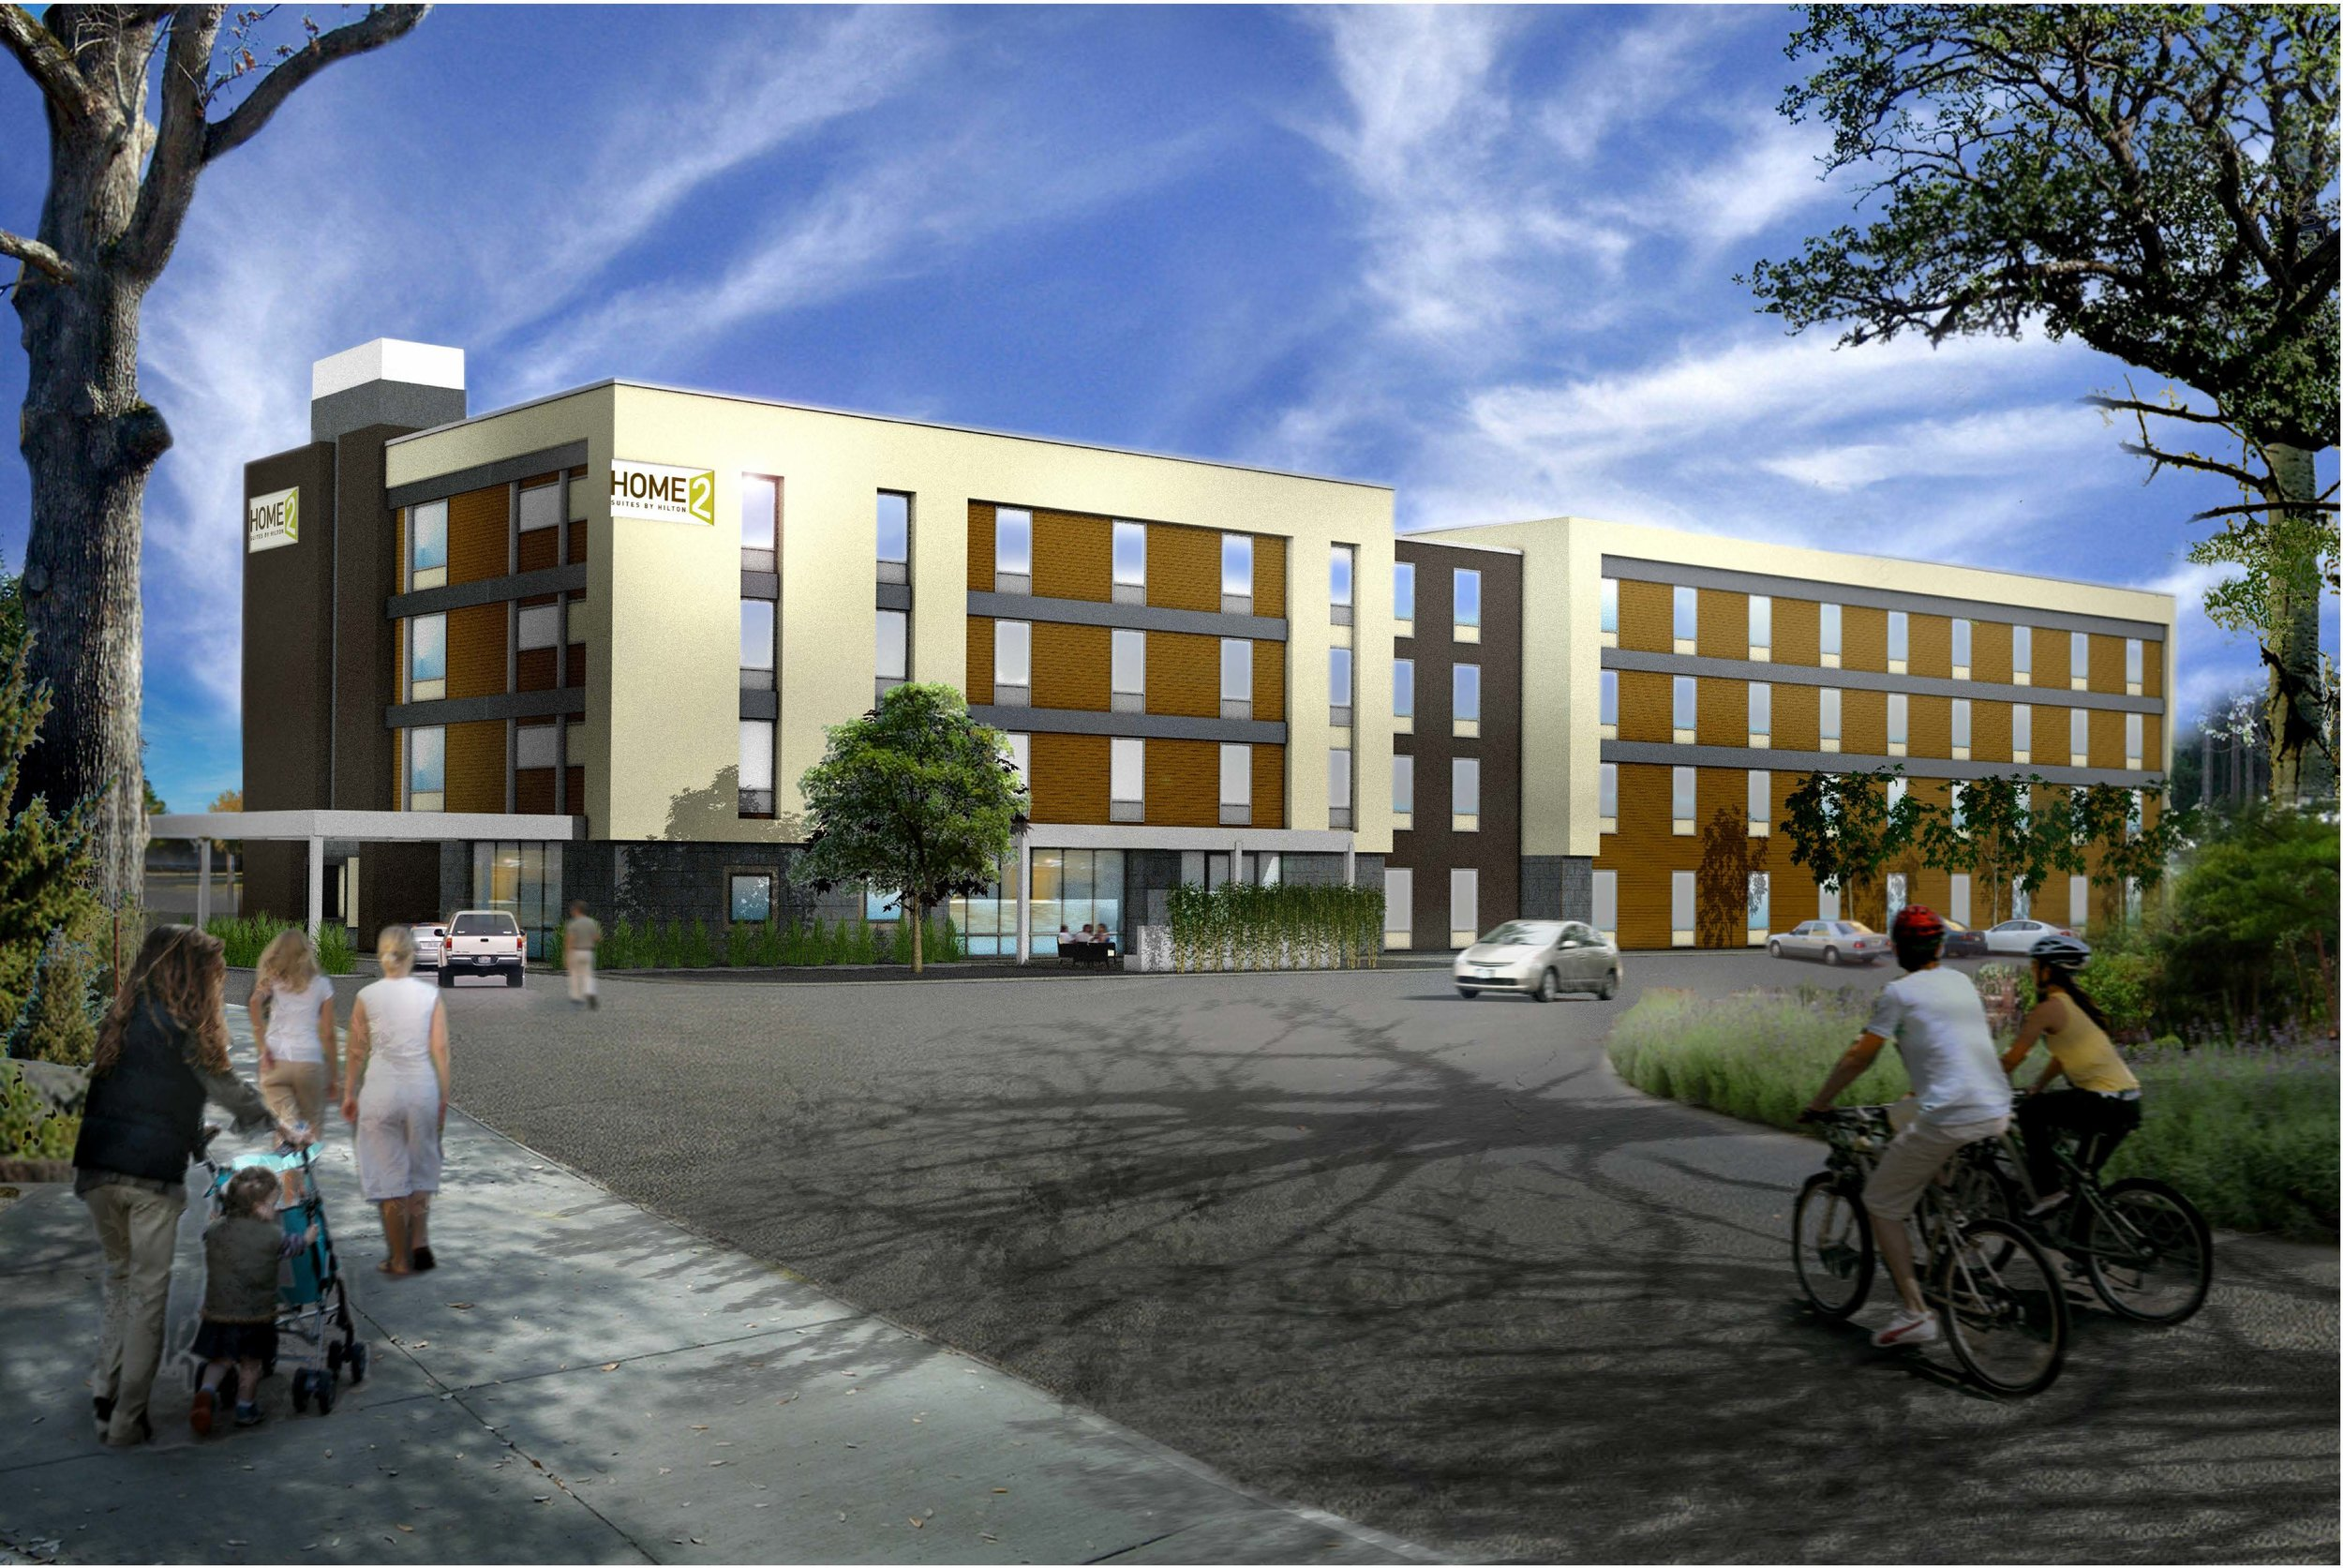 LANE4 is continuing to redevelop Rainbow Boulevard with the construction of a new extended stay Hilton Home2Suites at 34th and Rainbow in Kansas City, Kan.